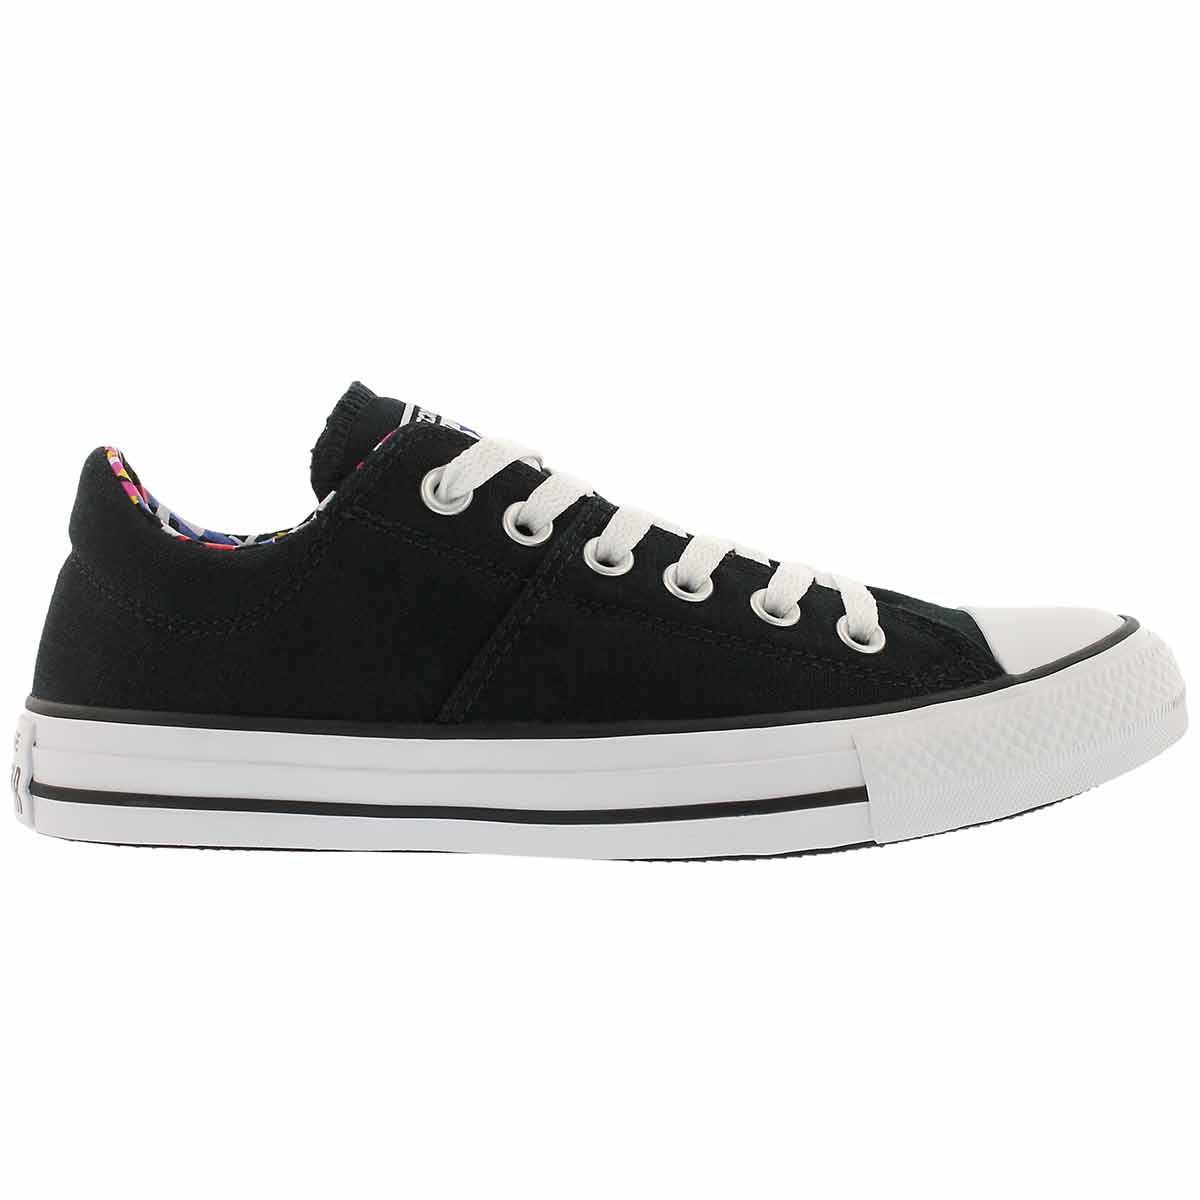 Lds CT AS Madison blk/purple sneaker